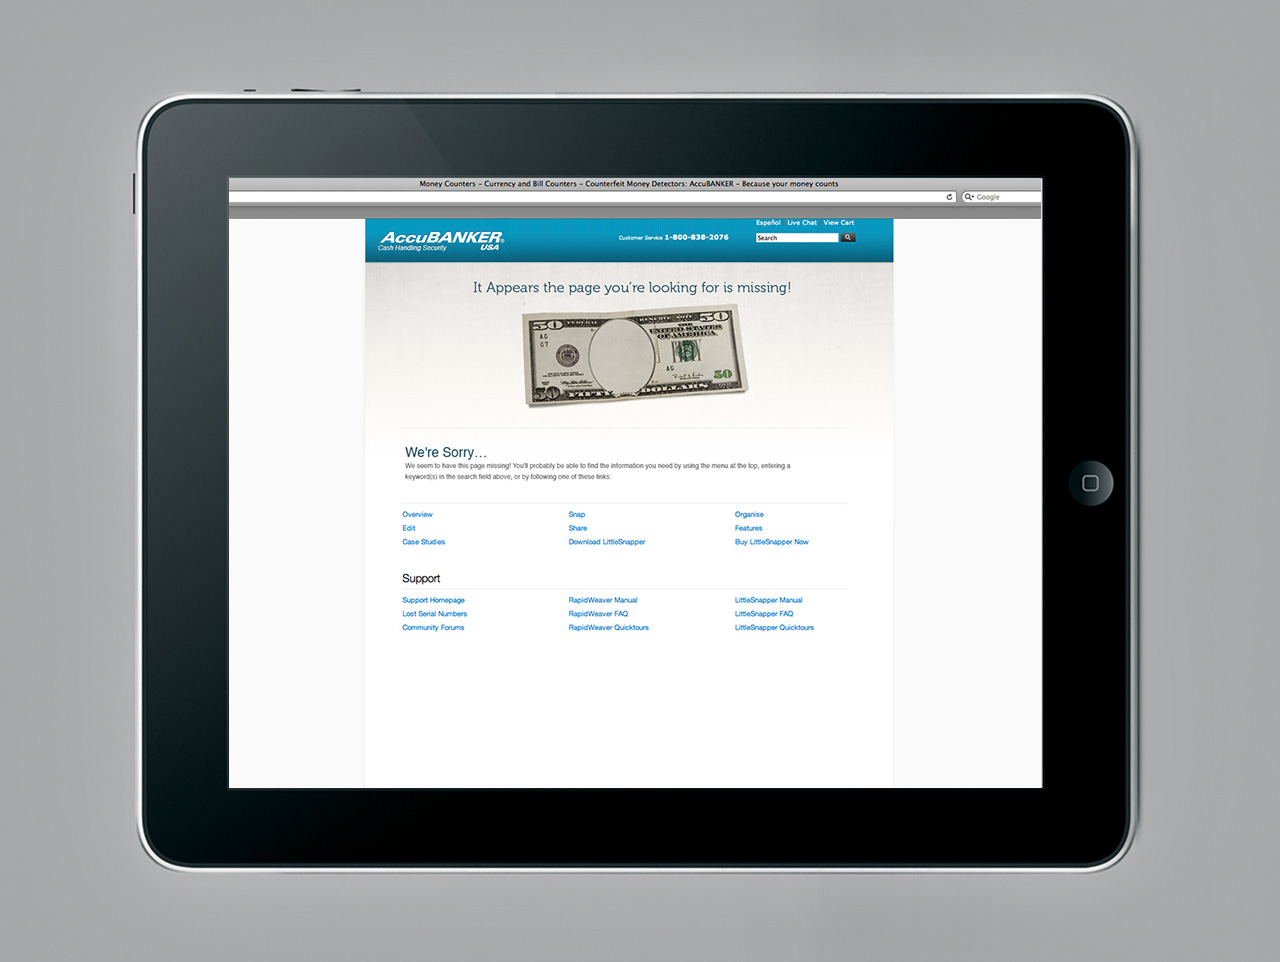 accubanker-website-design-10_o.jpg